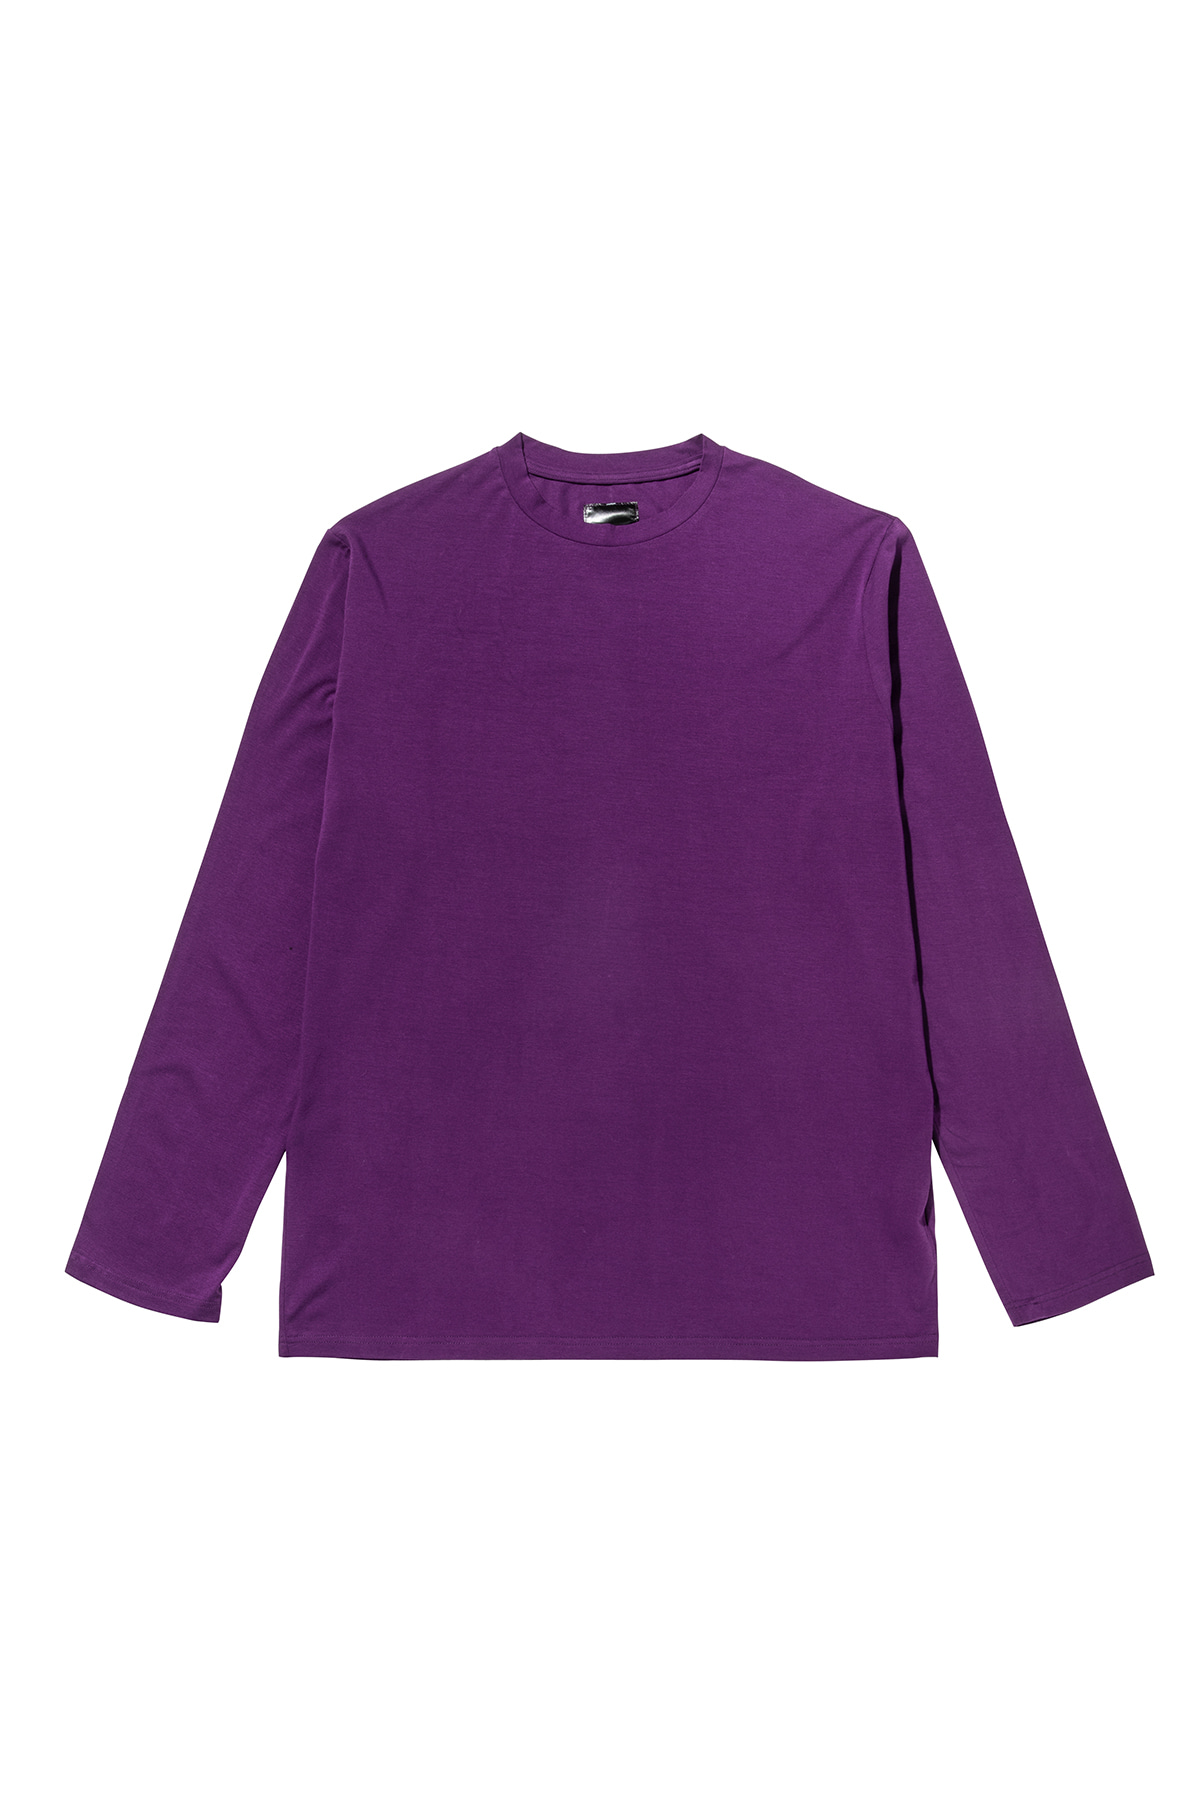 Pigment washing sleeve T-shirt (purple) #jp29